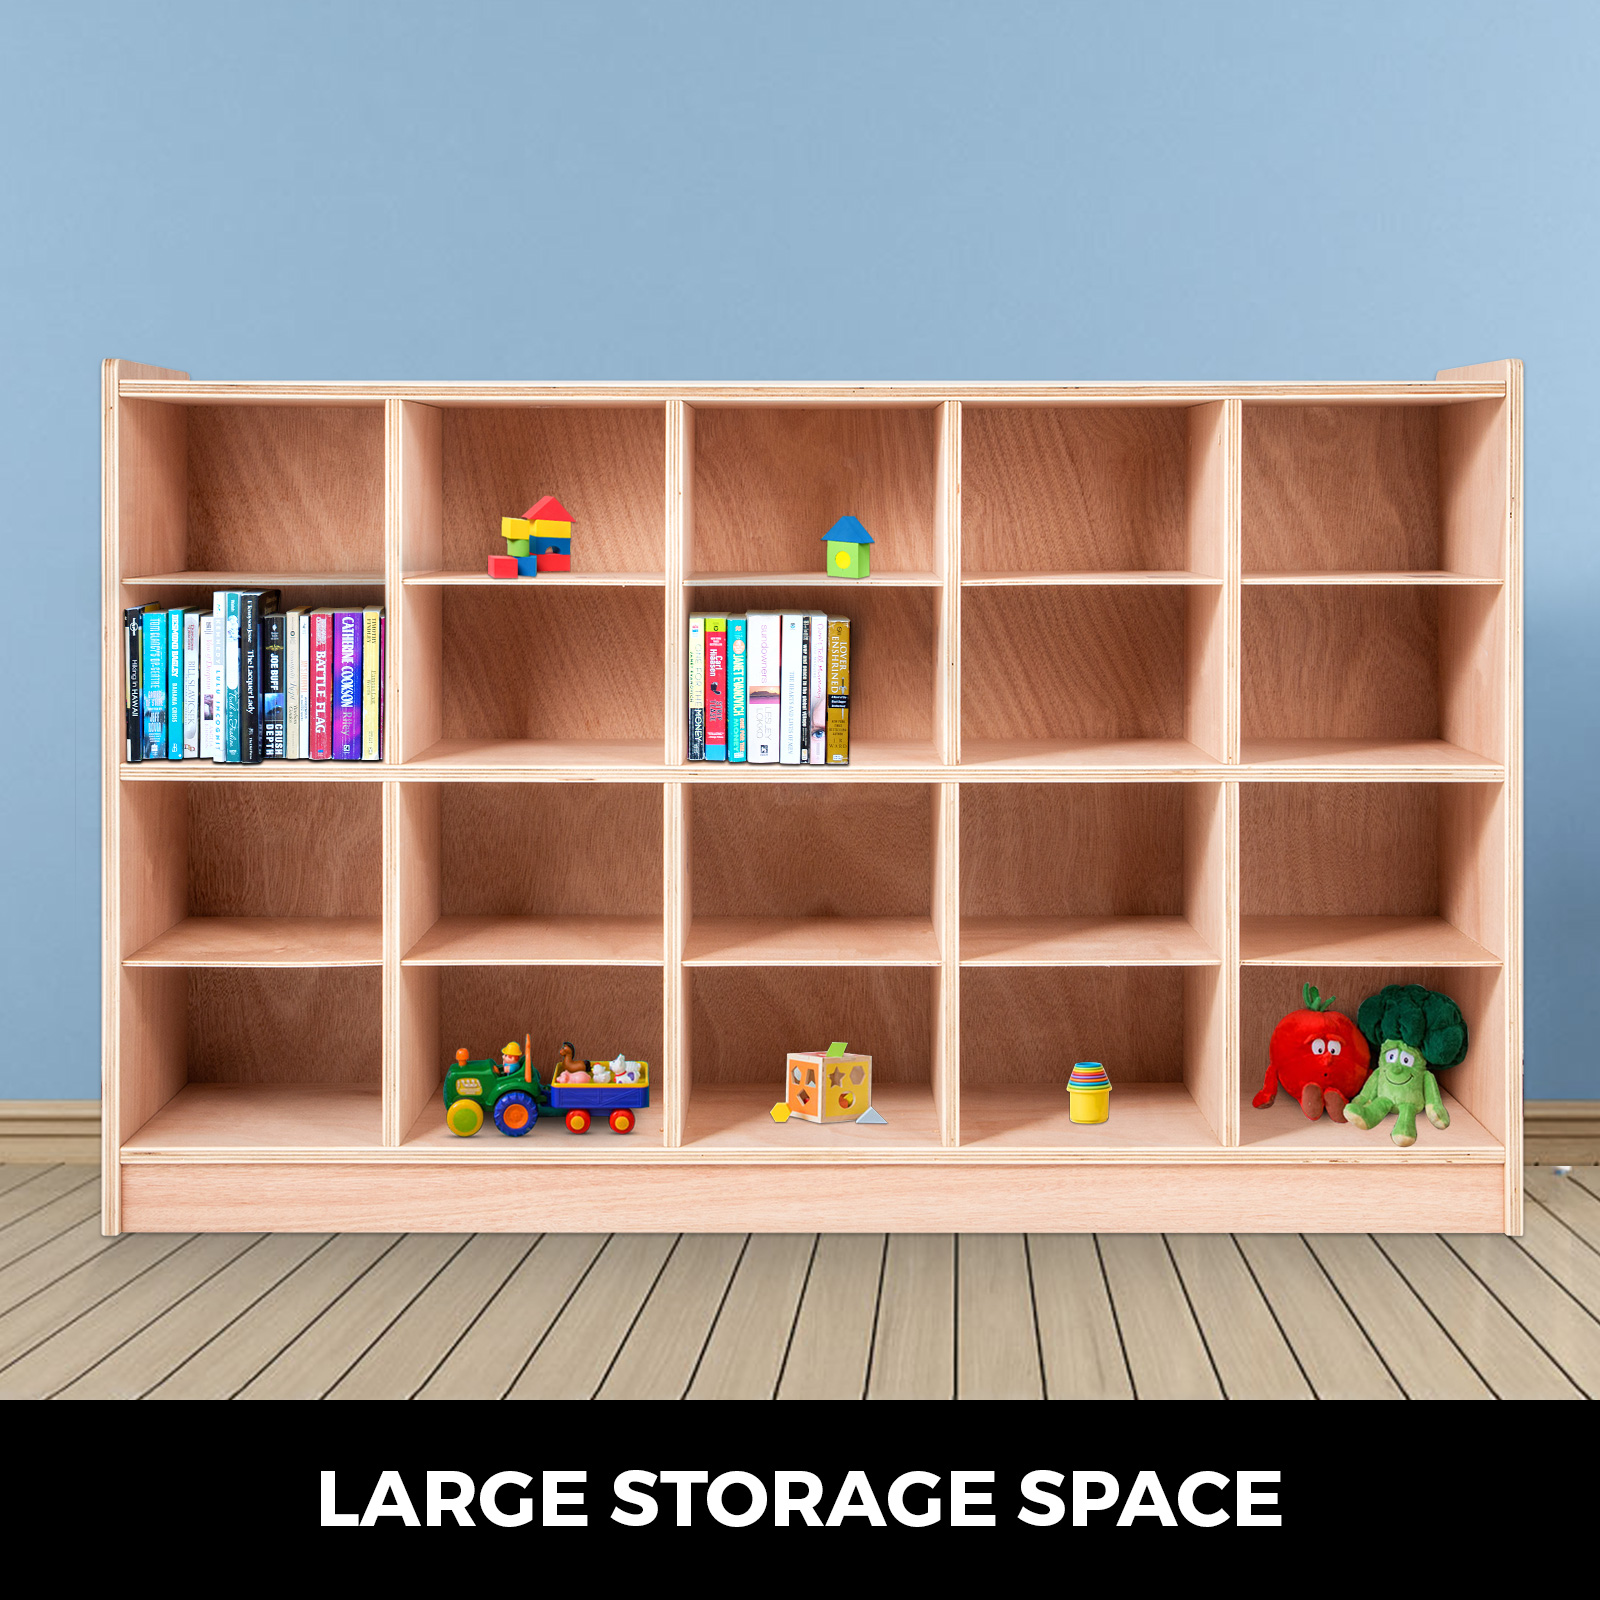 Classroom-Storage-Cabinet-Wooden-Cubby-20-Grids-Organizer-W-Casters-Non-toxic thumbnail 3